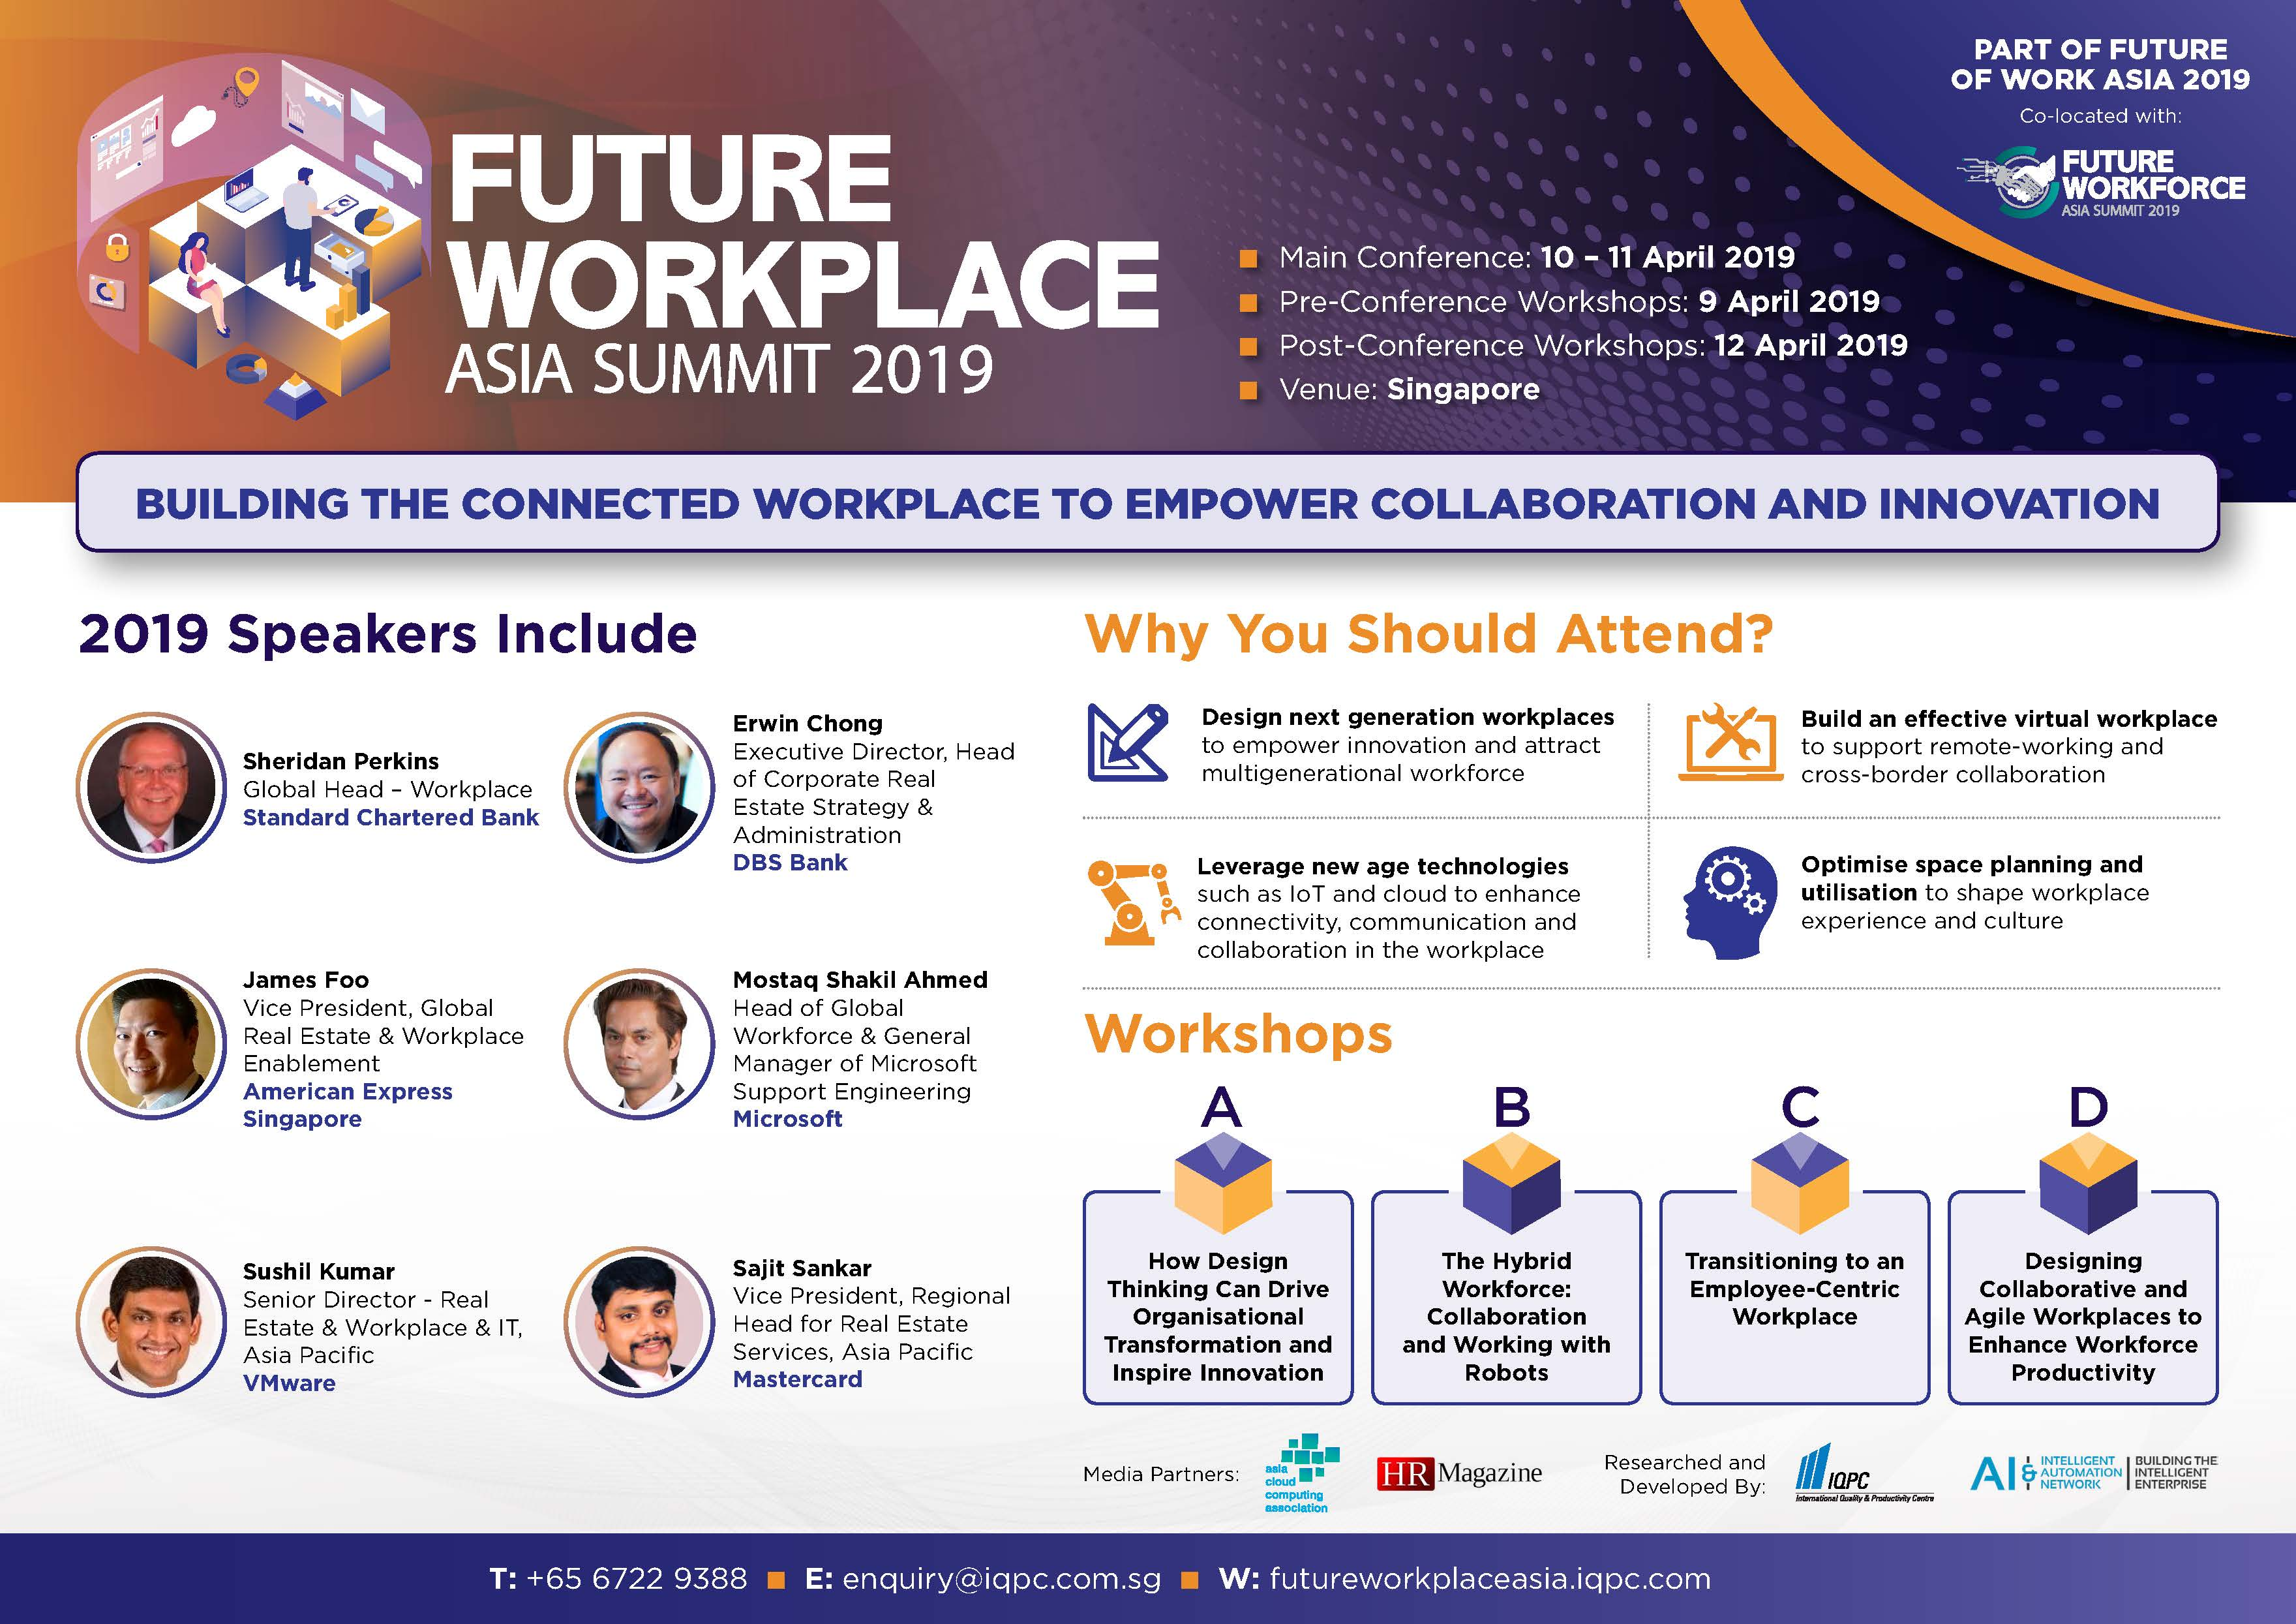 Download Your Event Guide - Future Workplace Asia Summit 2019 Brochure